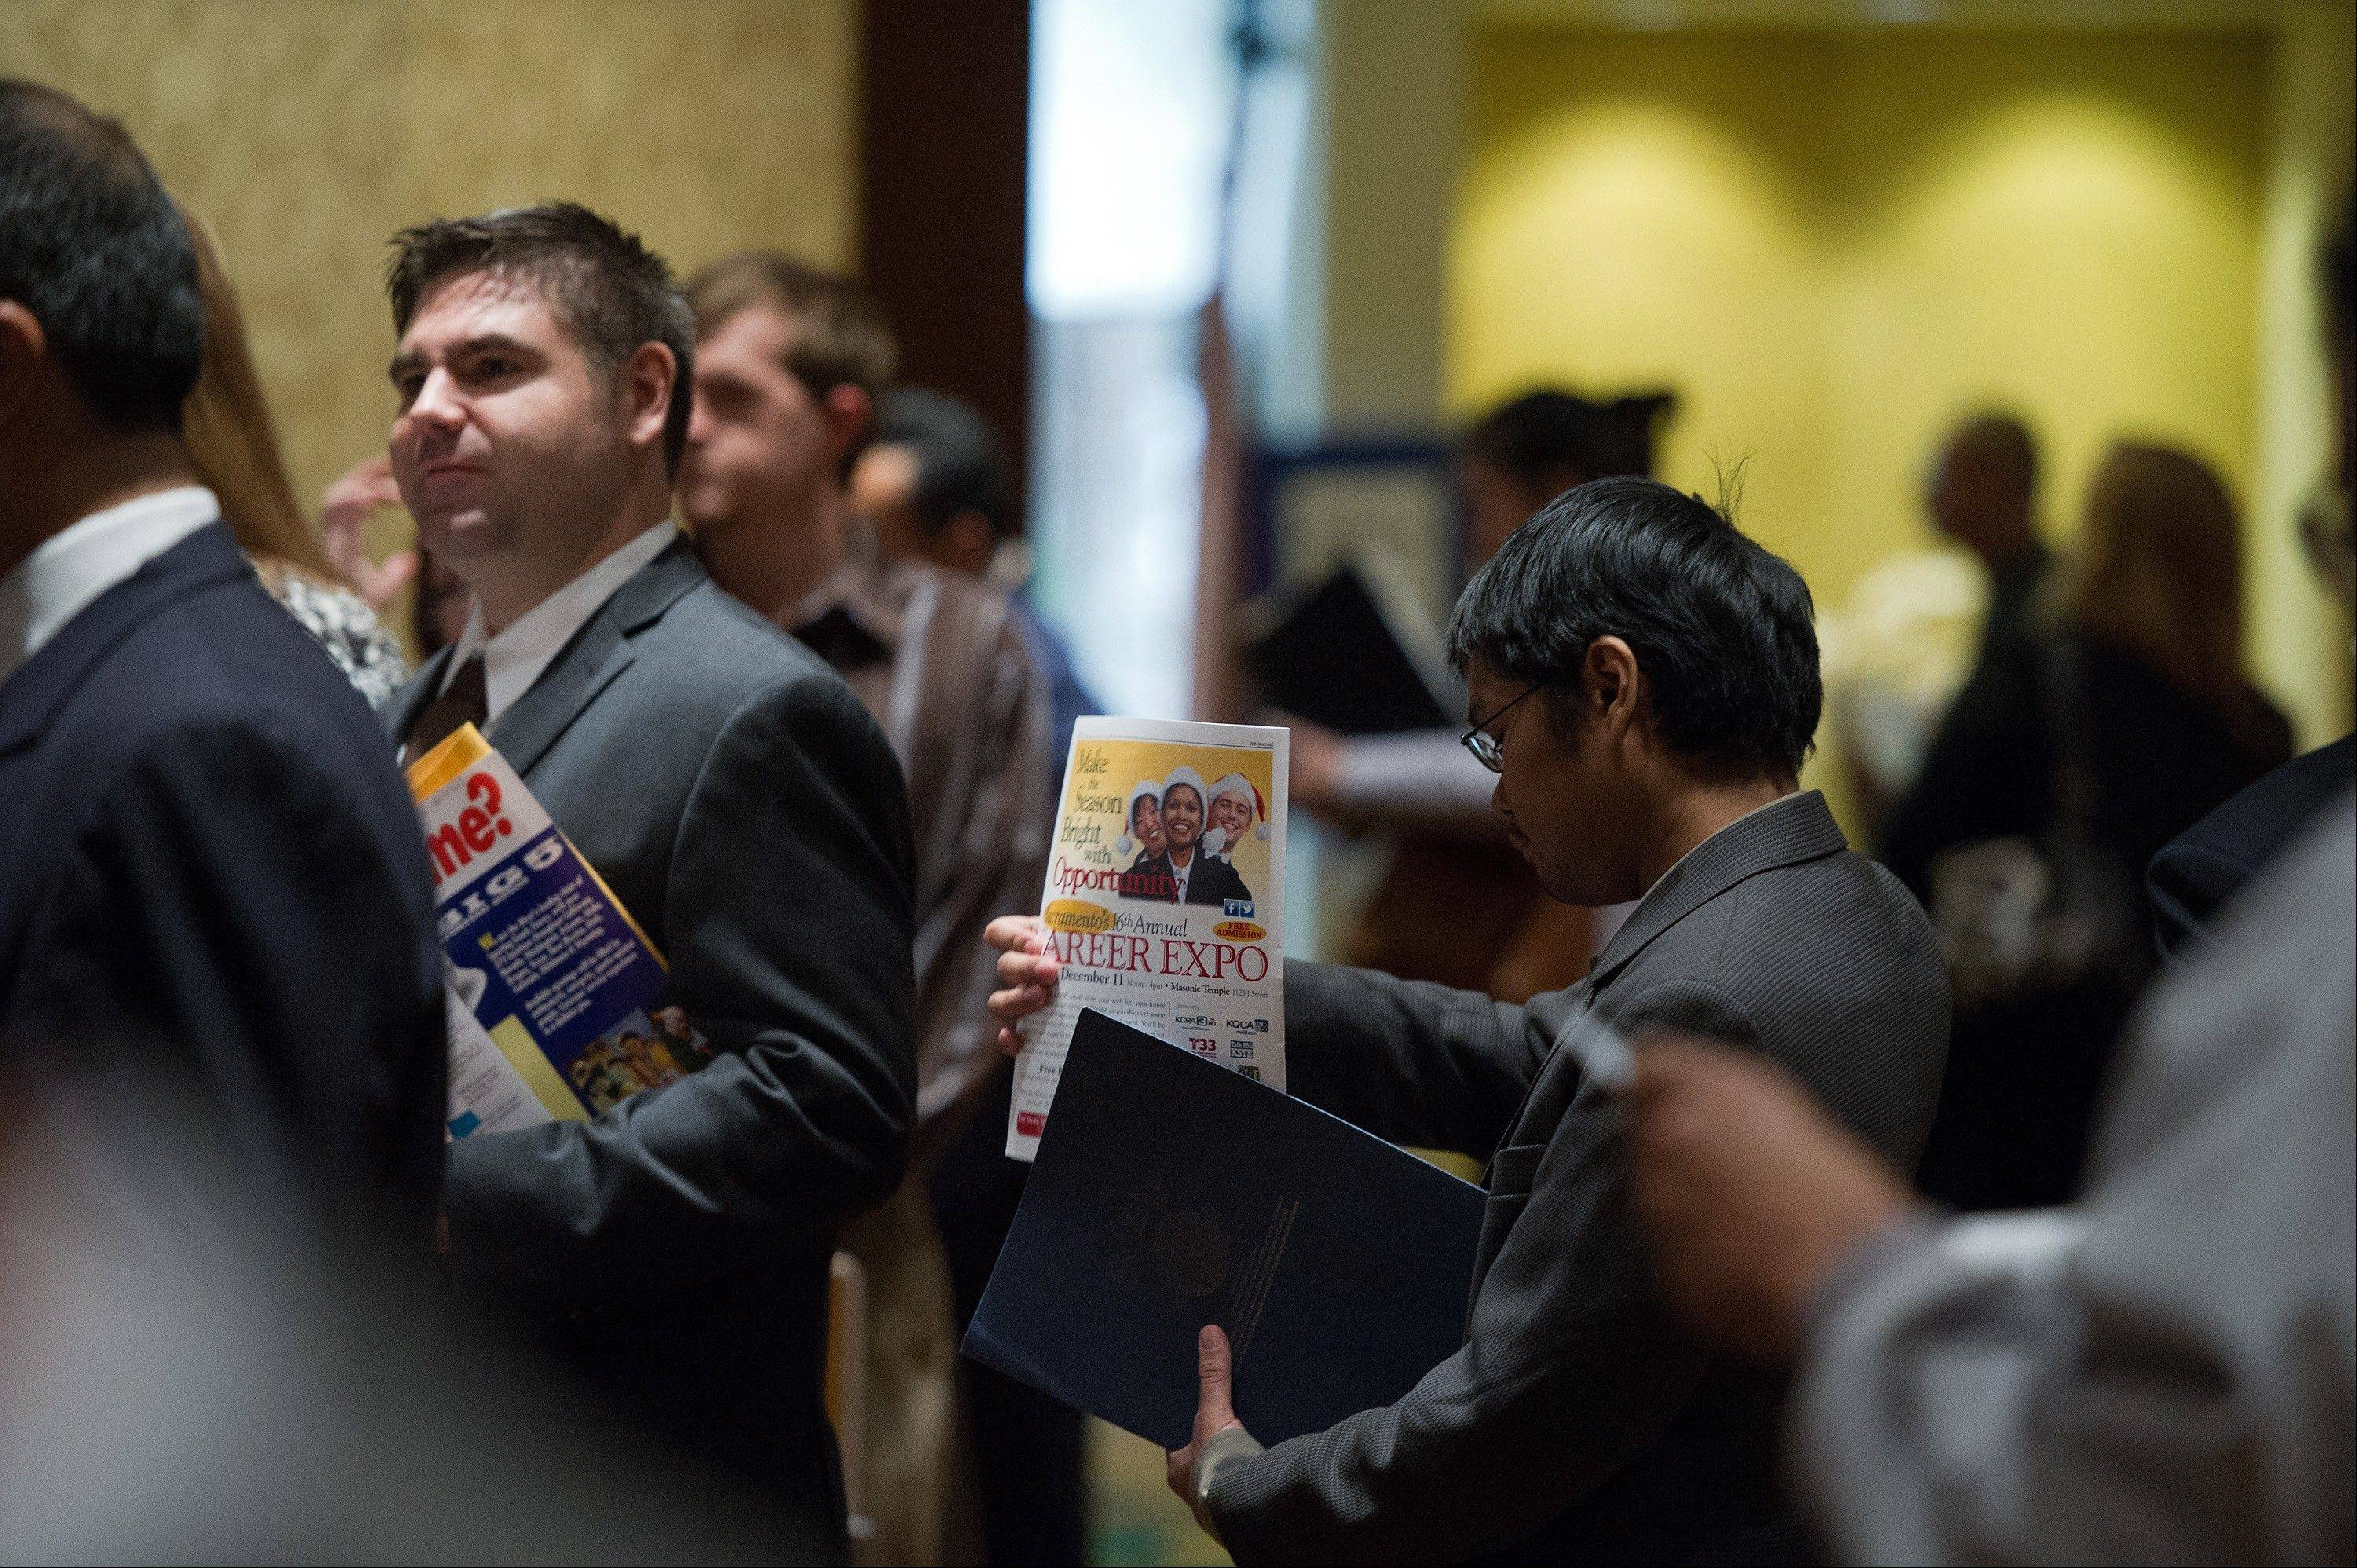 Job seekers wait to speak to recruiters during a job fair in San Jose, California, earlier this week.